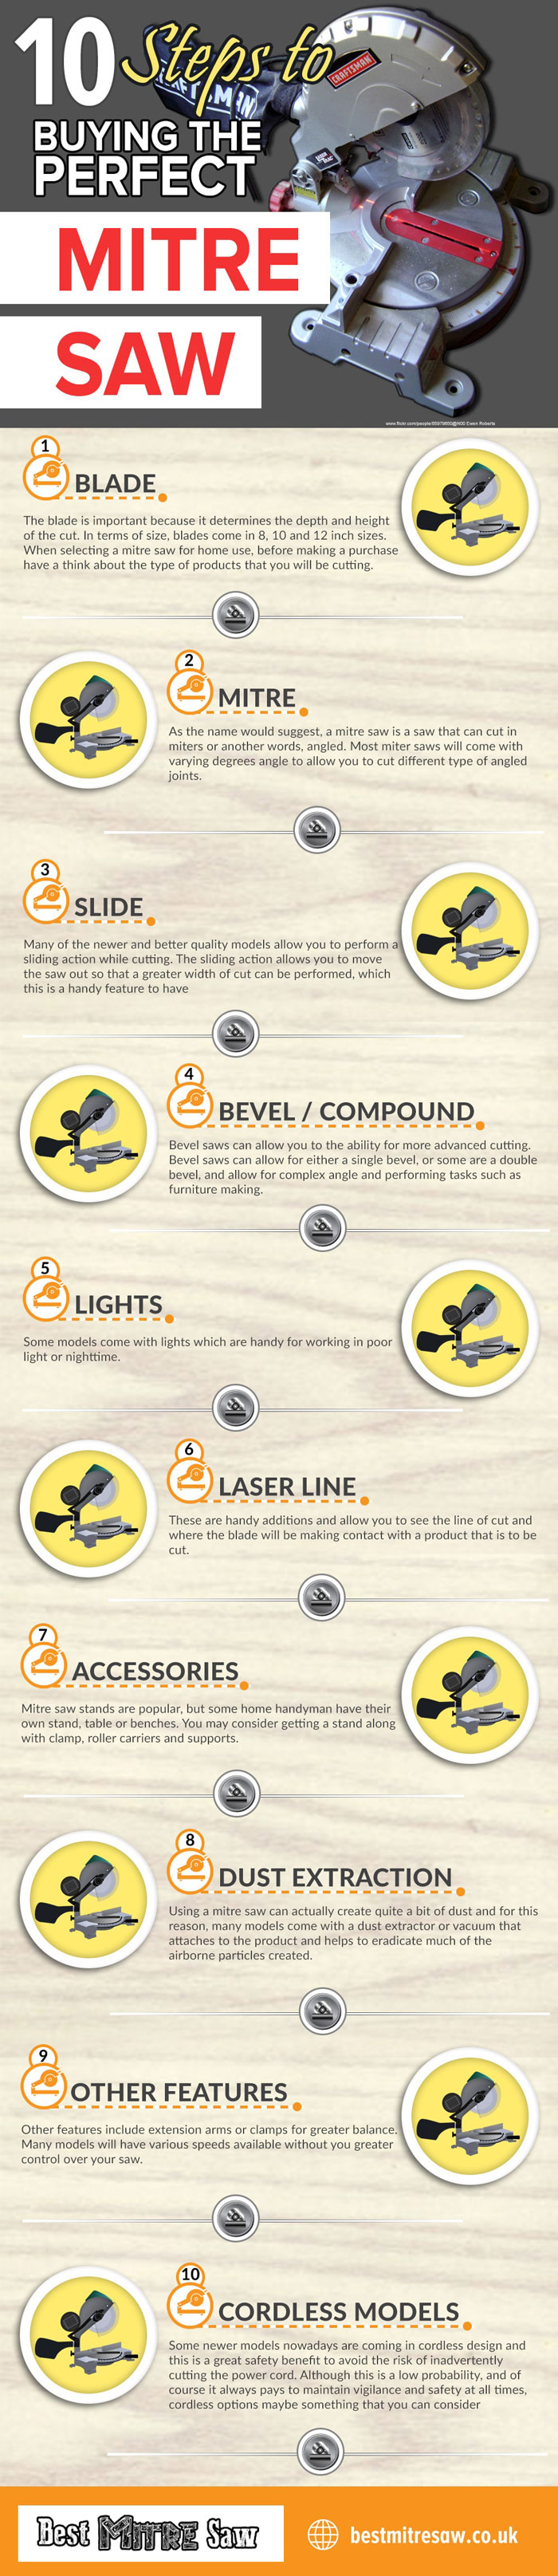 Best-Mitre-Saw-Buying-Guide-min